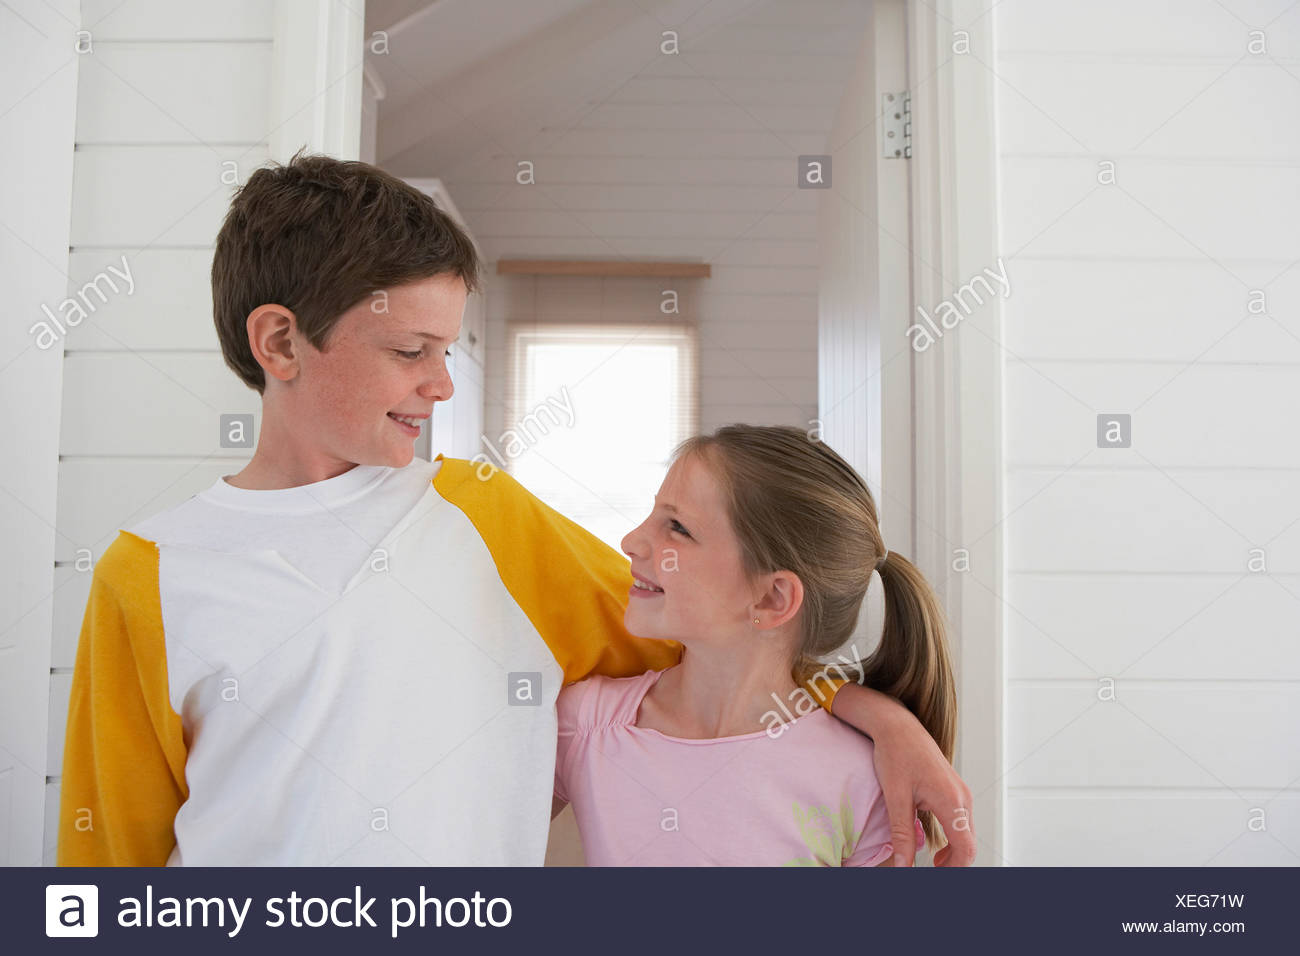 Young boy with arm around girl standing in house, half length - Stock Image